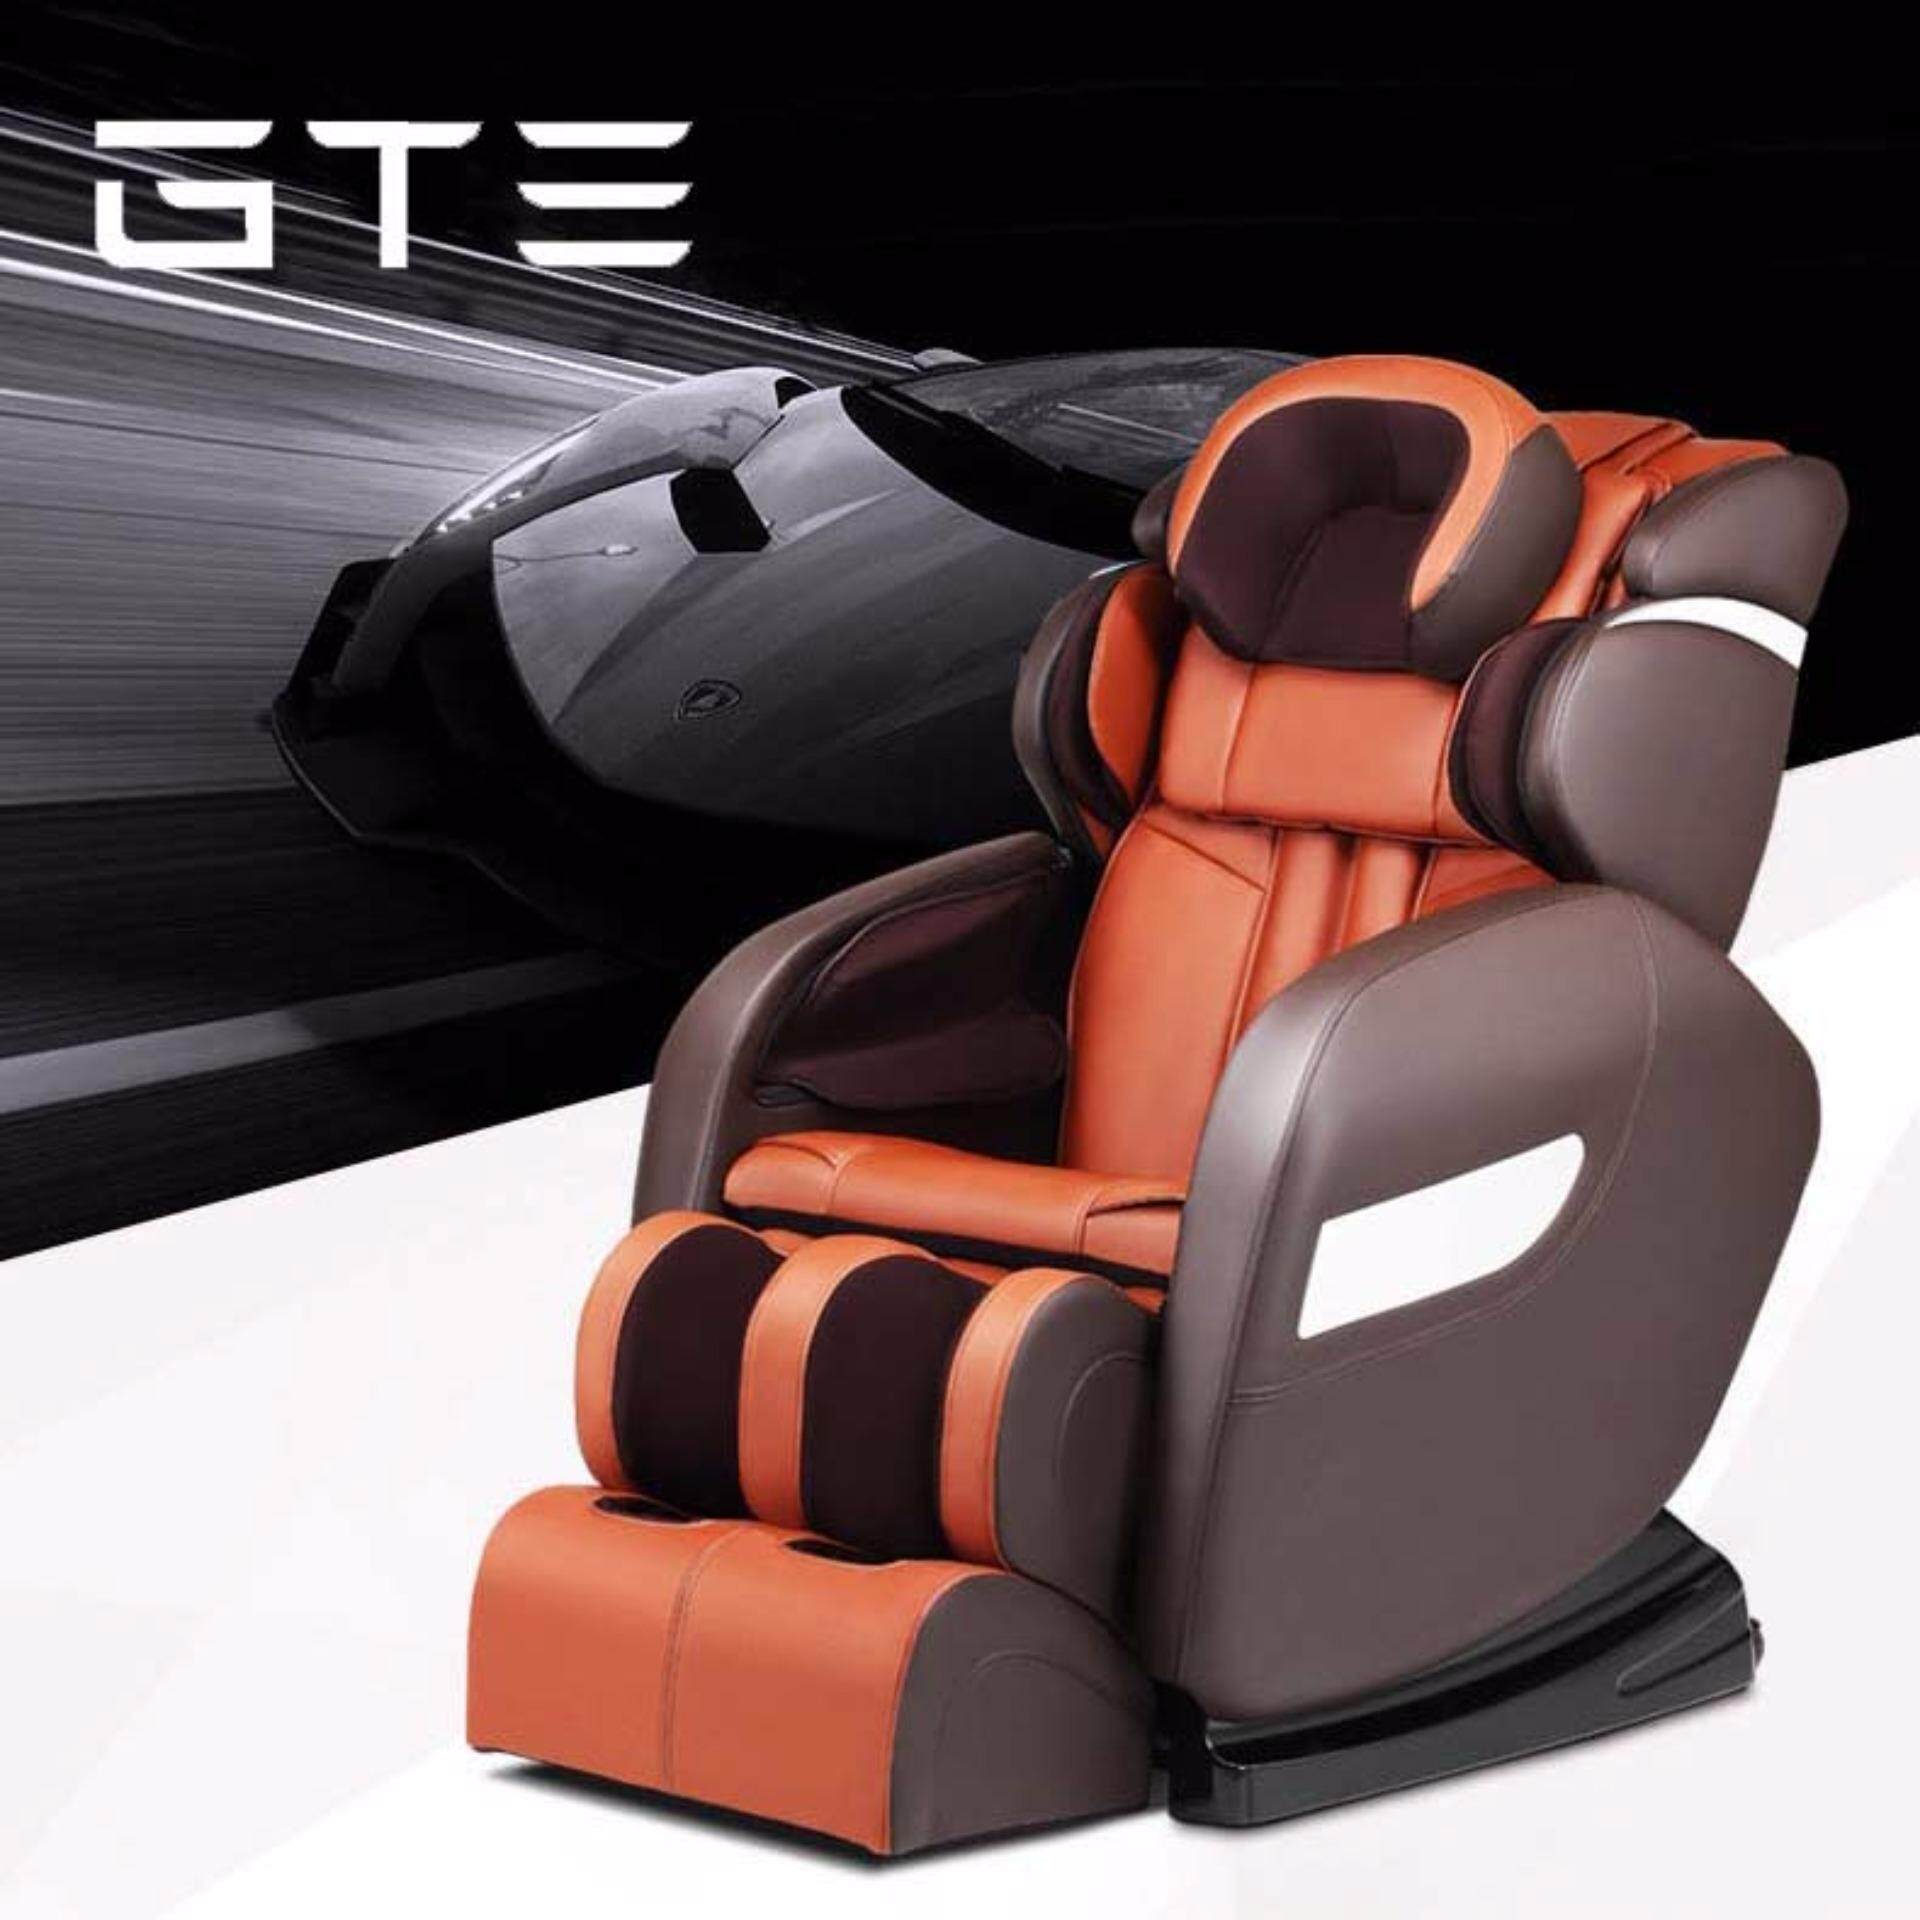 GTE Luxury Zero Gravity Space Capsule Massage Chair Home Multifunctional  Electric Chair Malaysia